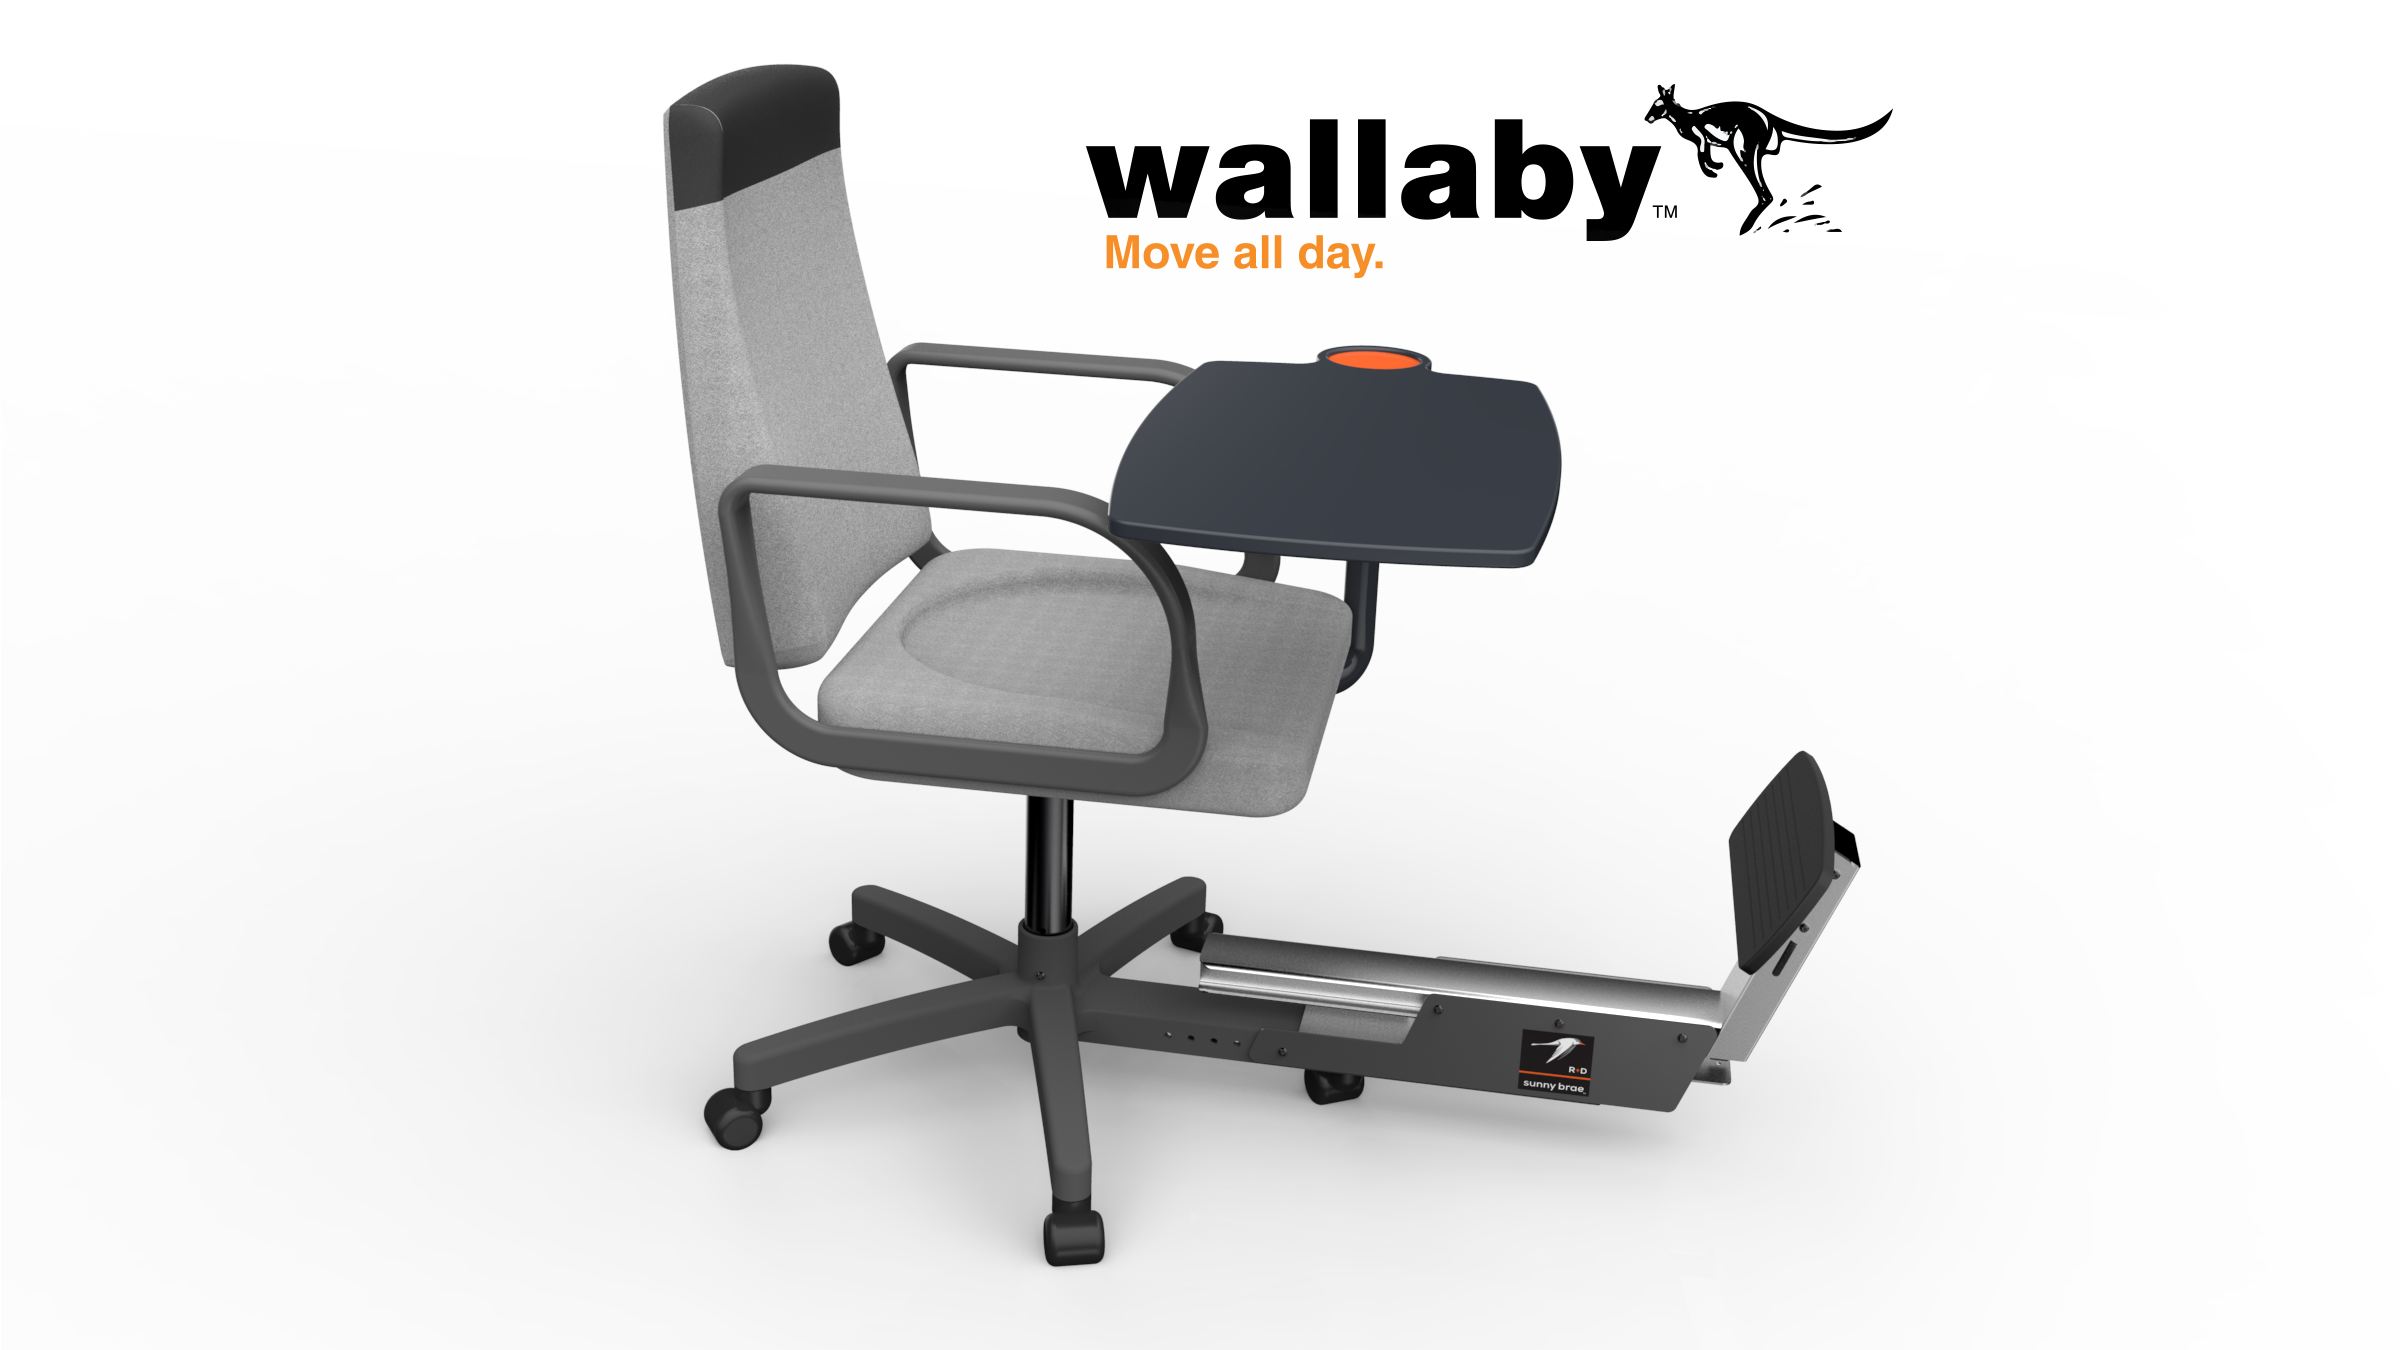 The Wallaby Chair for Strong Legs